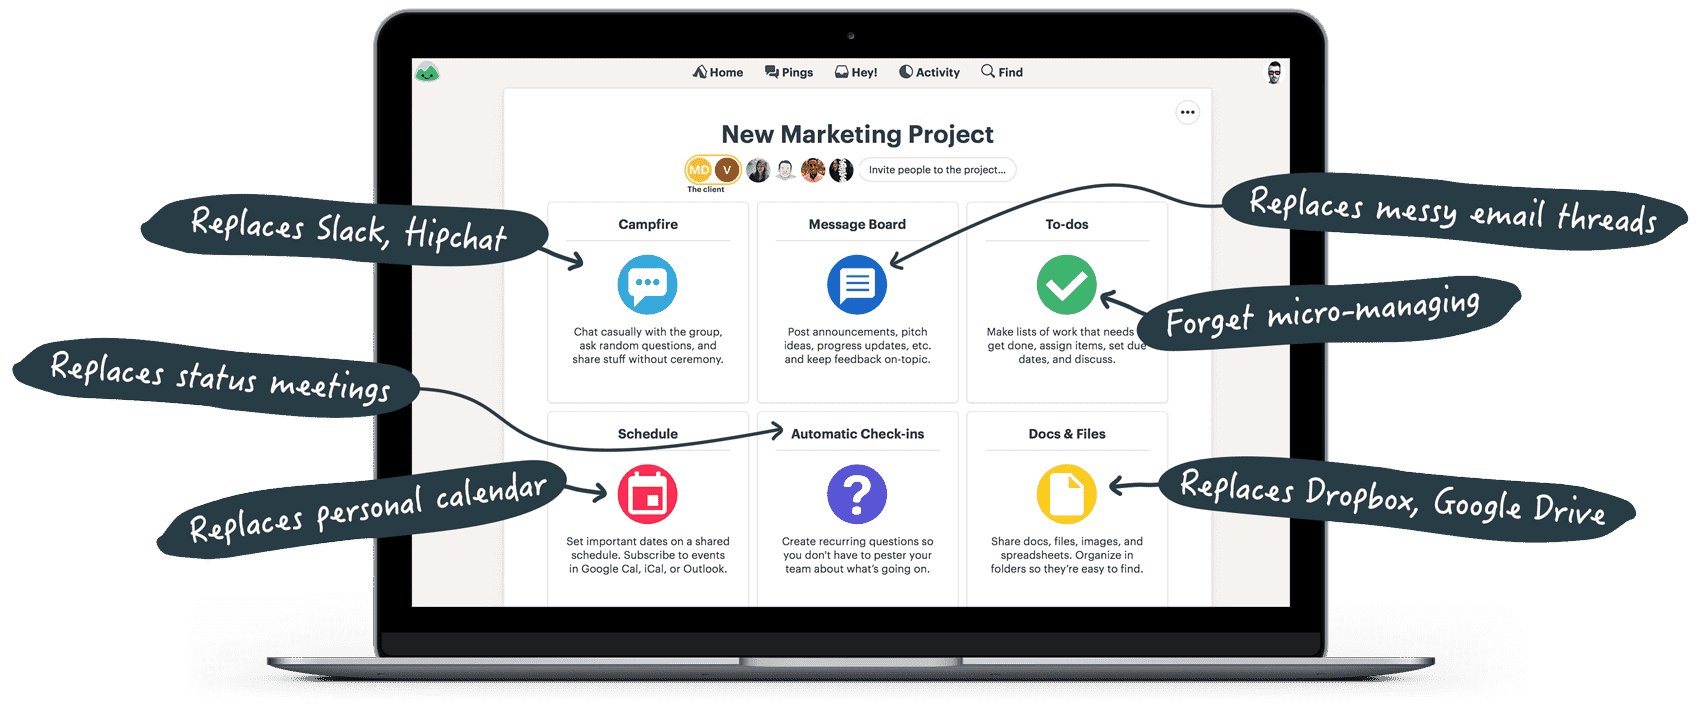 Basecamp Project Management Software